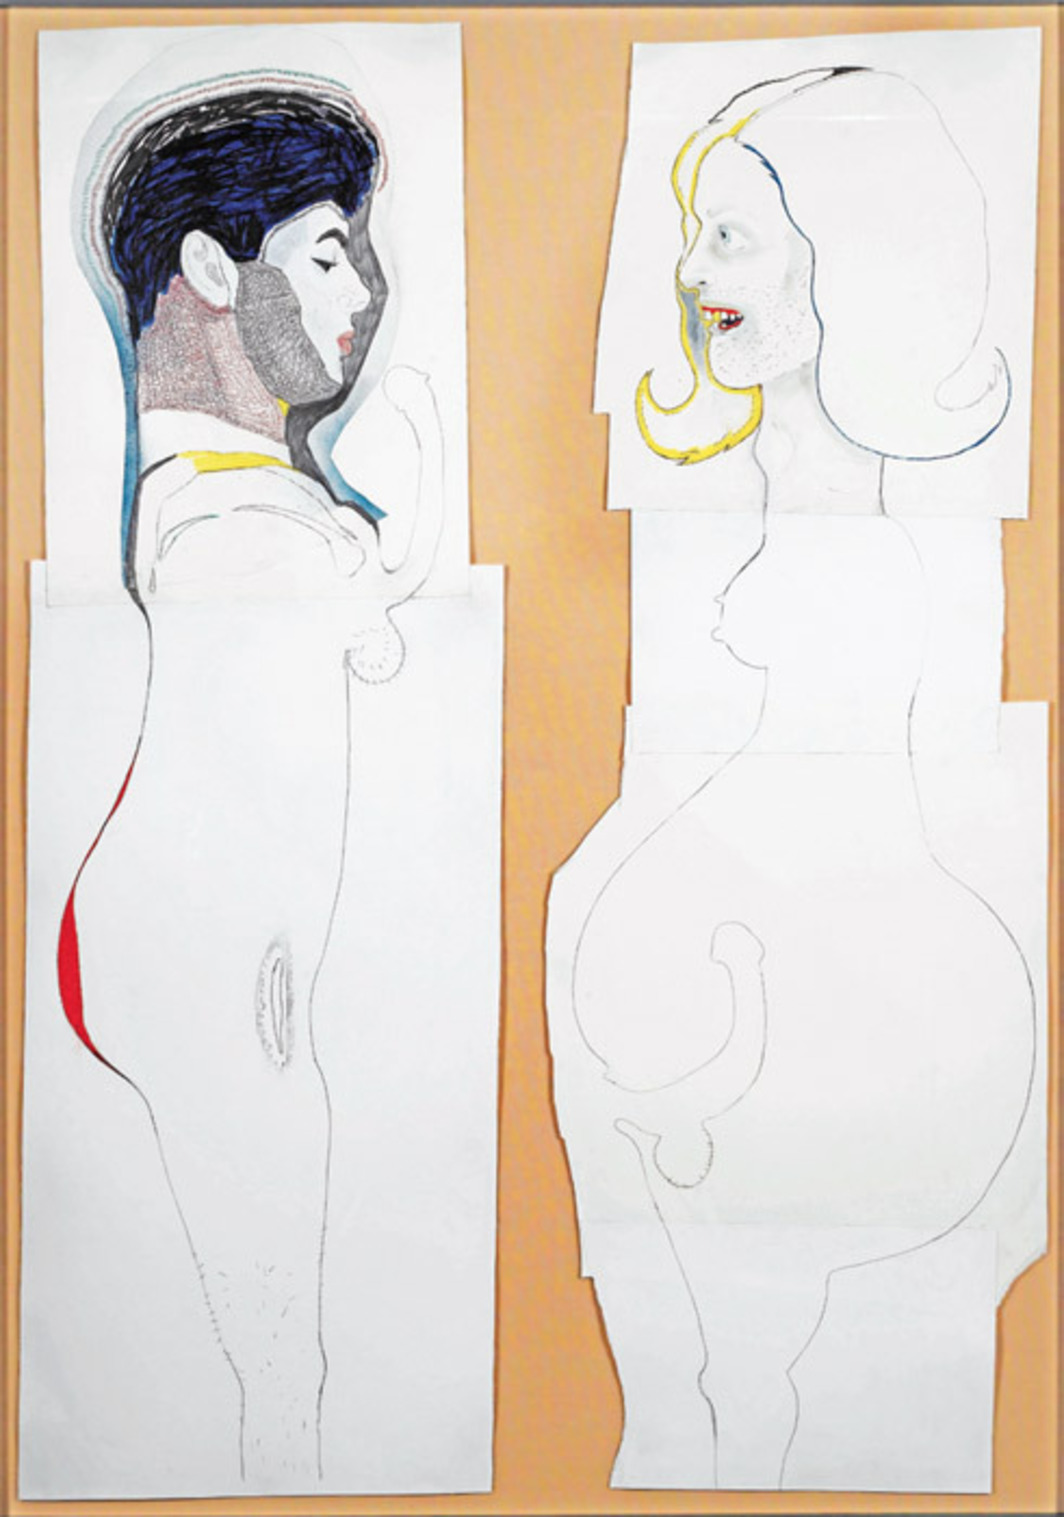 "Mike Kelley, Mr. and Mrs. Hermaphrodite, 2005, pencil, ink, gouache, and crayon on paper, 65 1/8 x 47 3/8""."